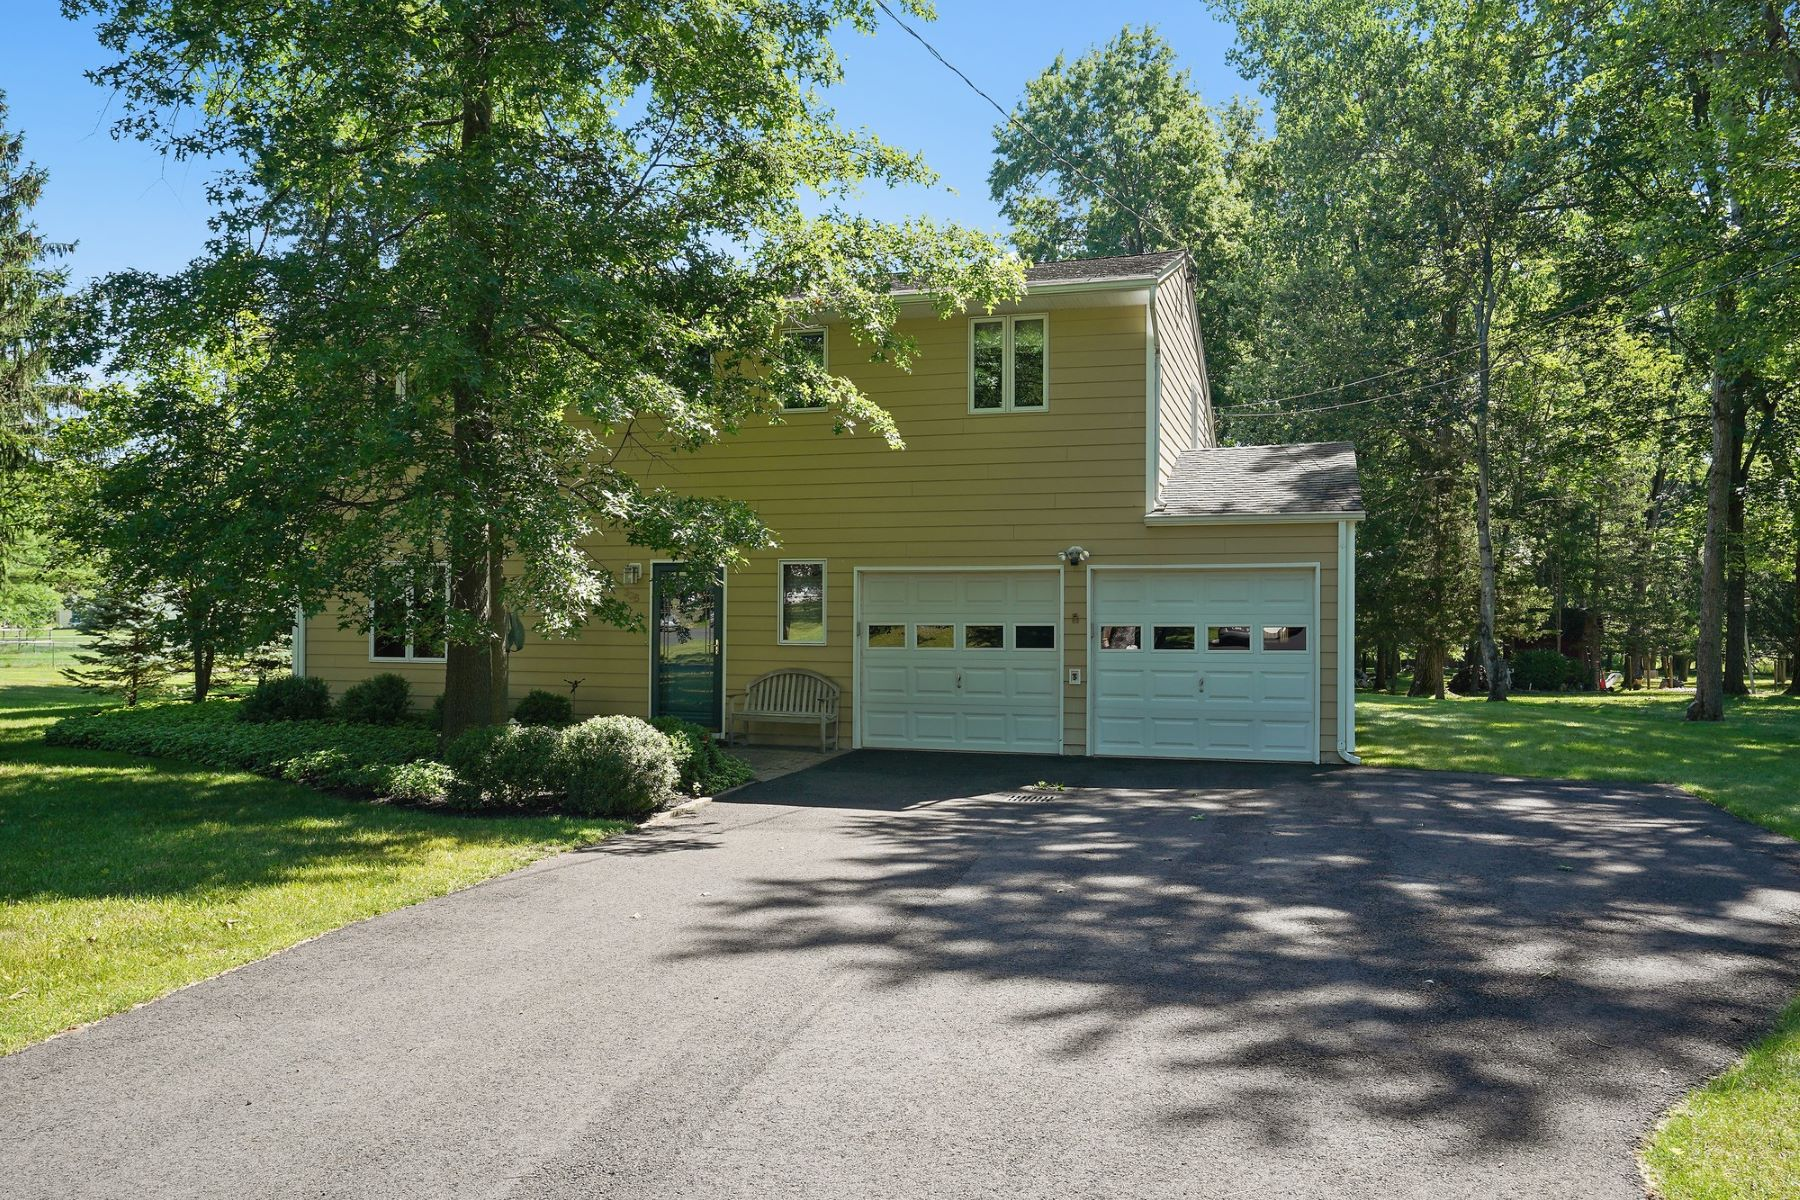 Single Family Homes for Active at Impeccably Maintained Home 996 Papen Road Bridgewater, New Jersey 08807 United States